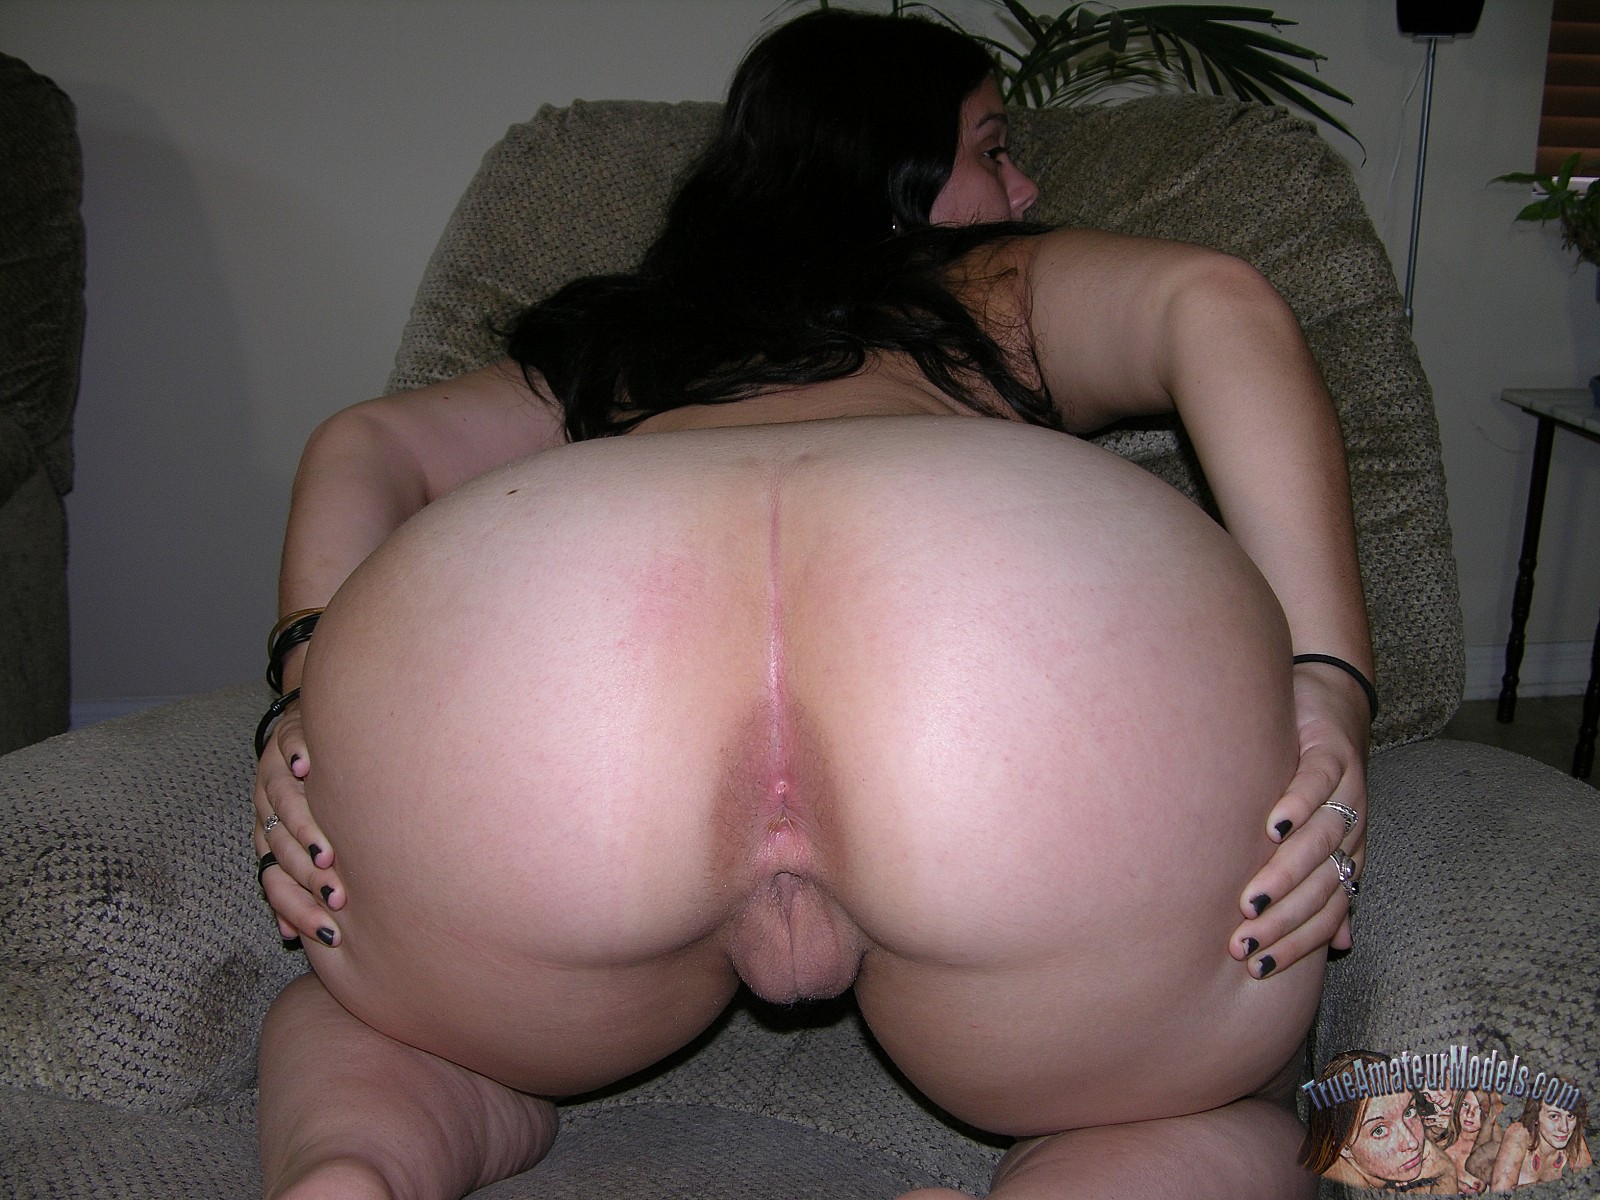 naked chubby girl ass and pussy